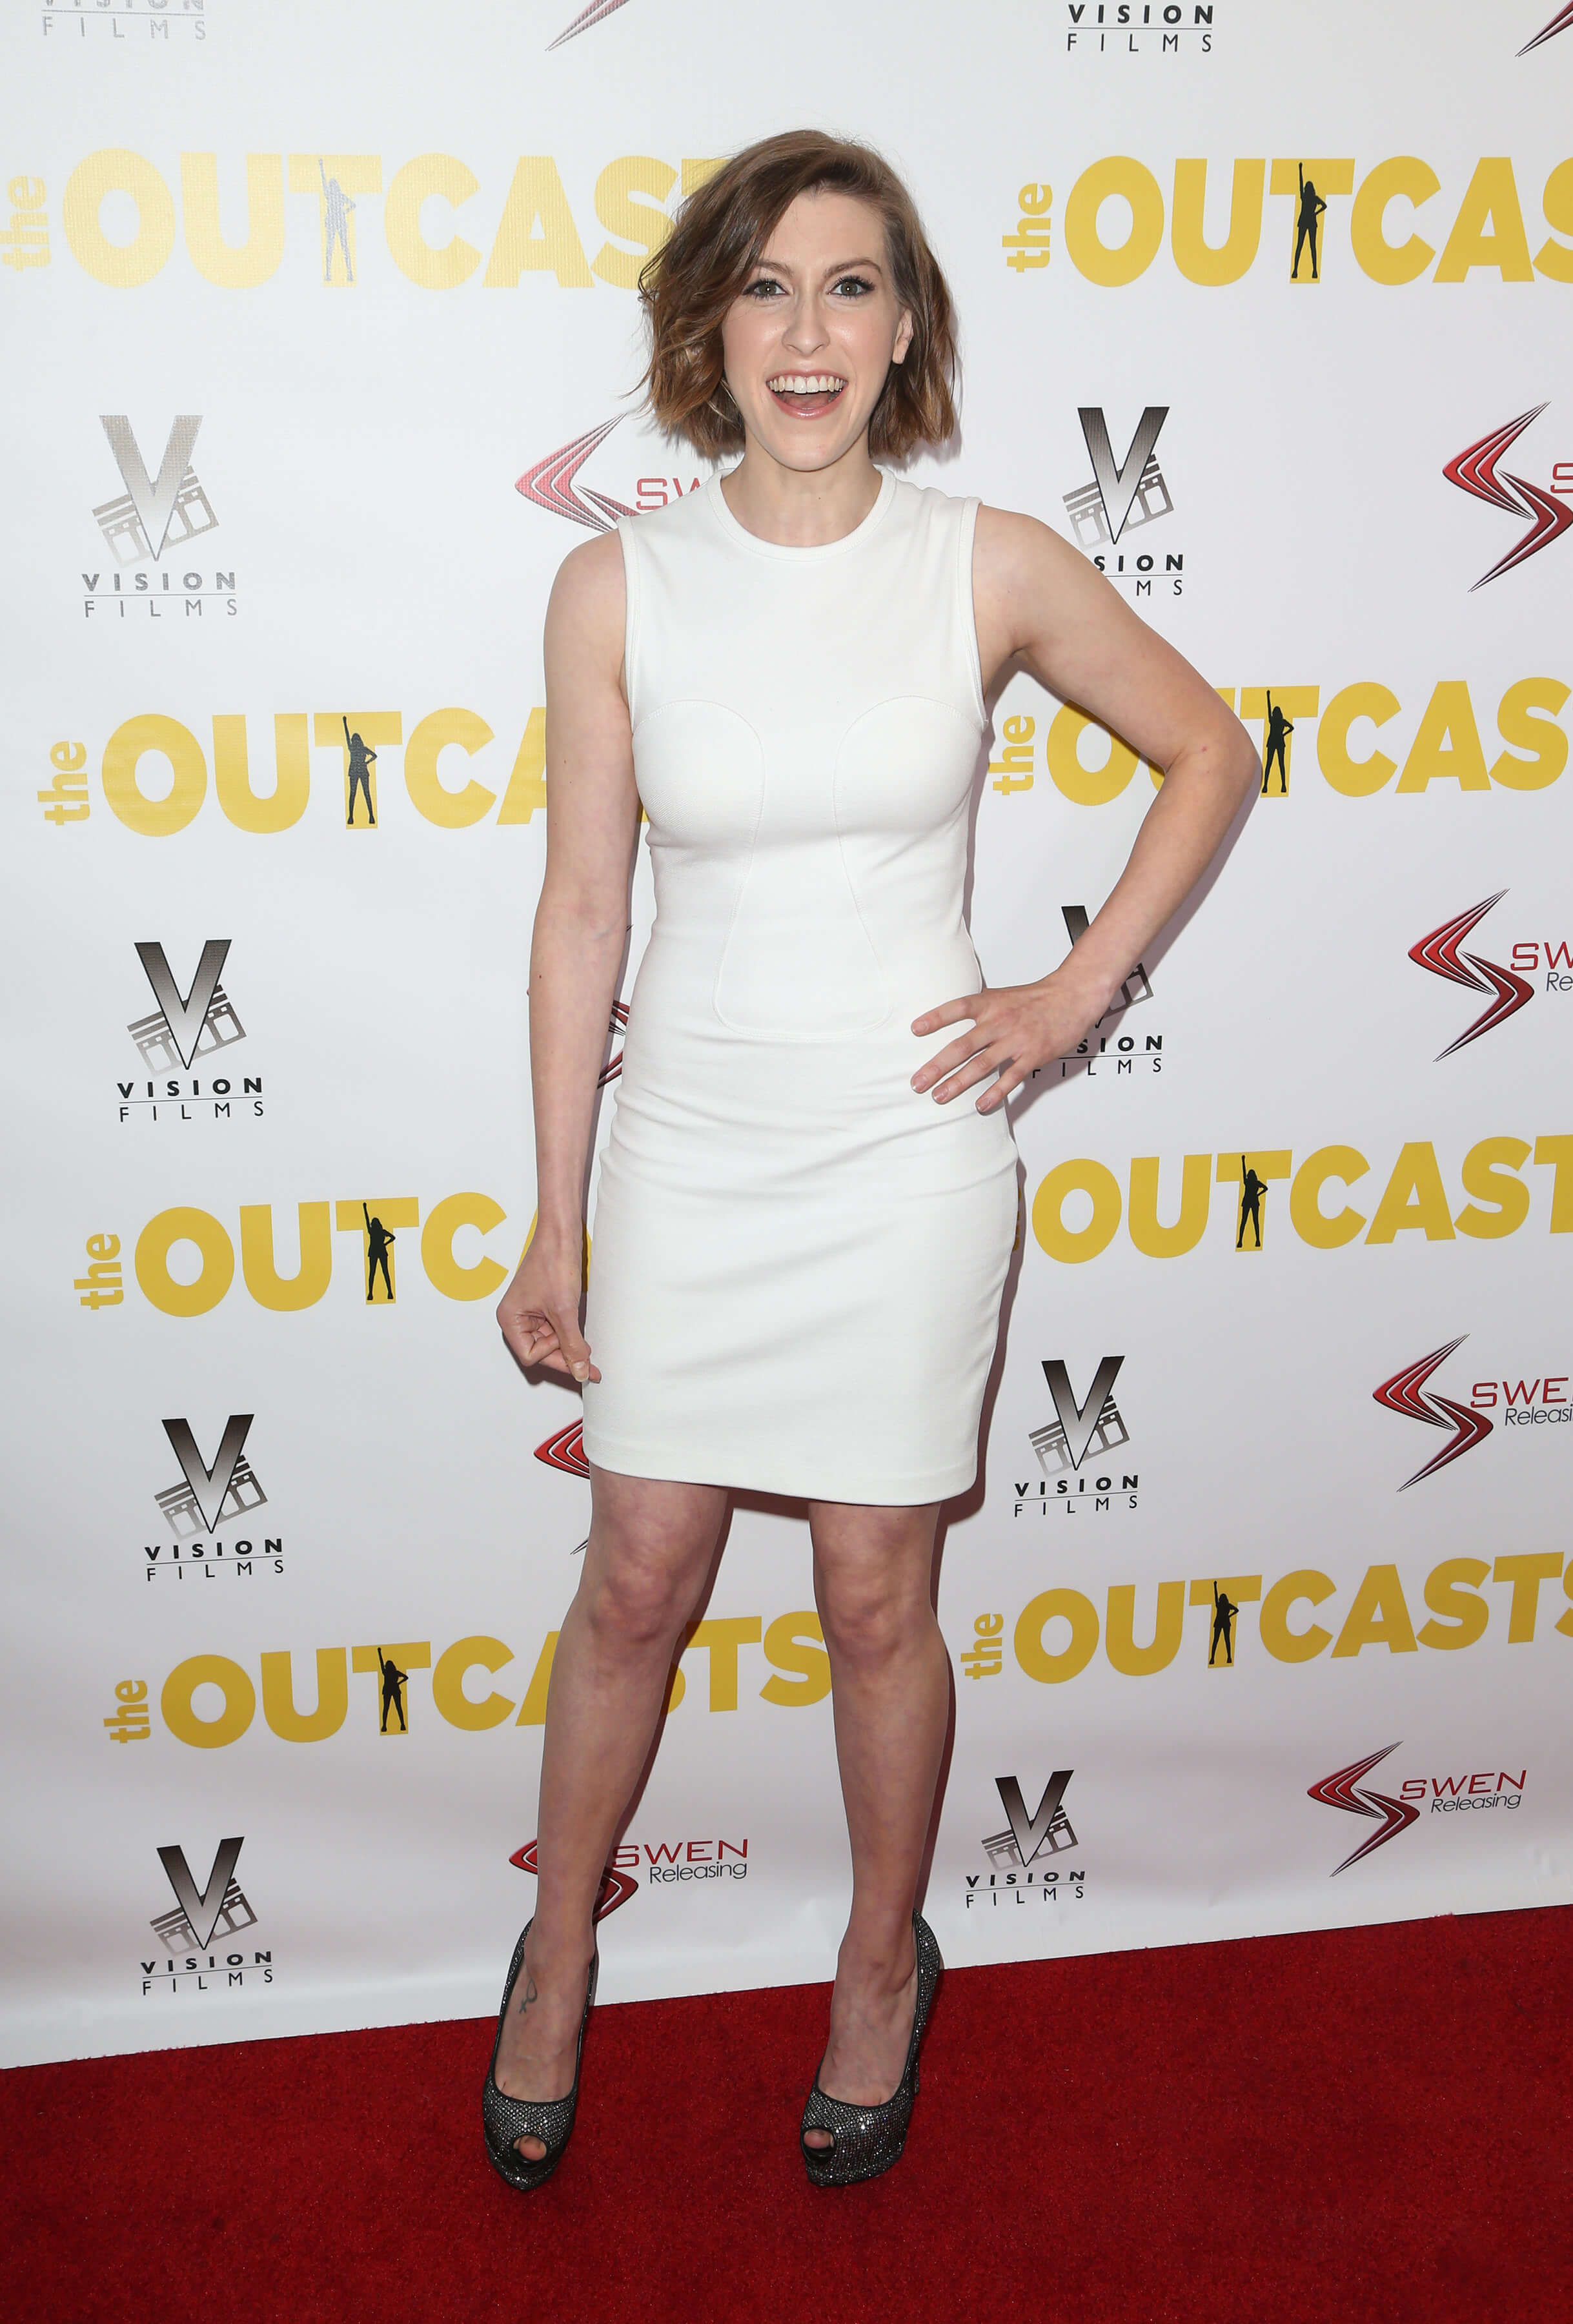 60+ Sexy Eden Sher Boobs Pictures Which Get You Addicted